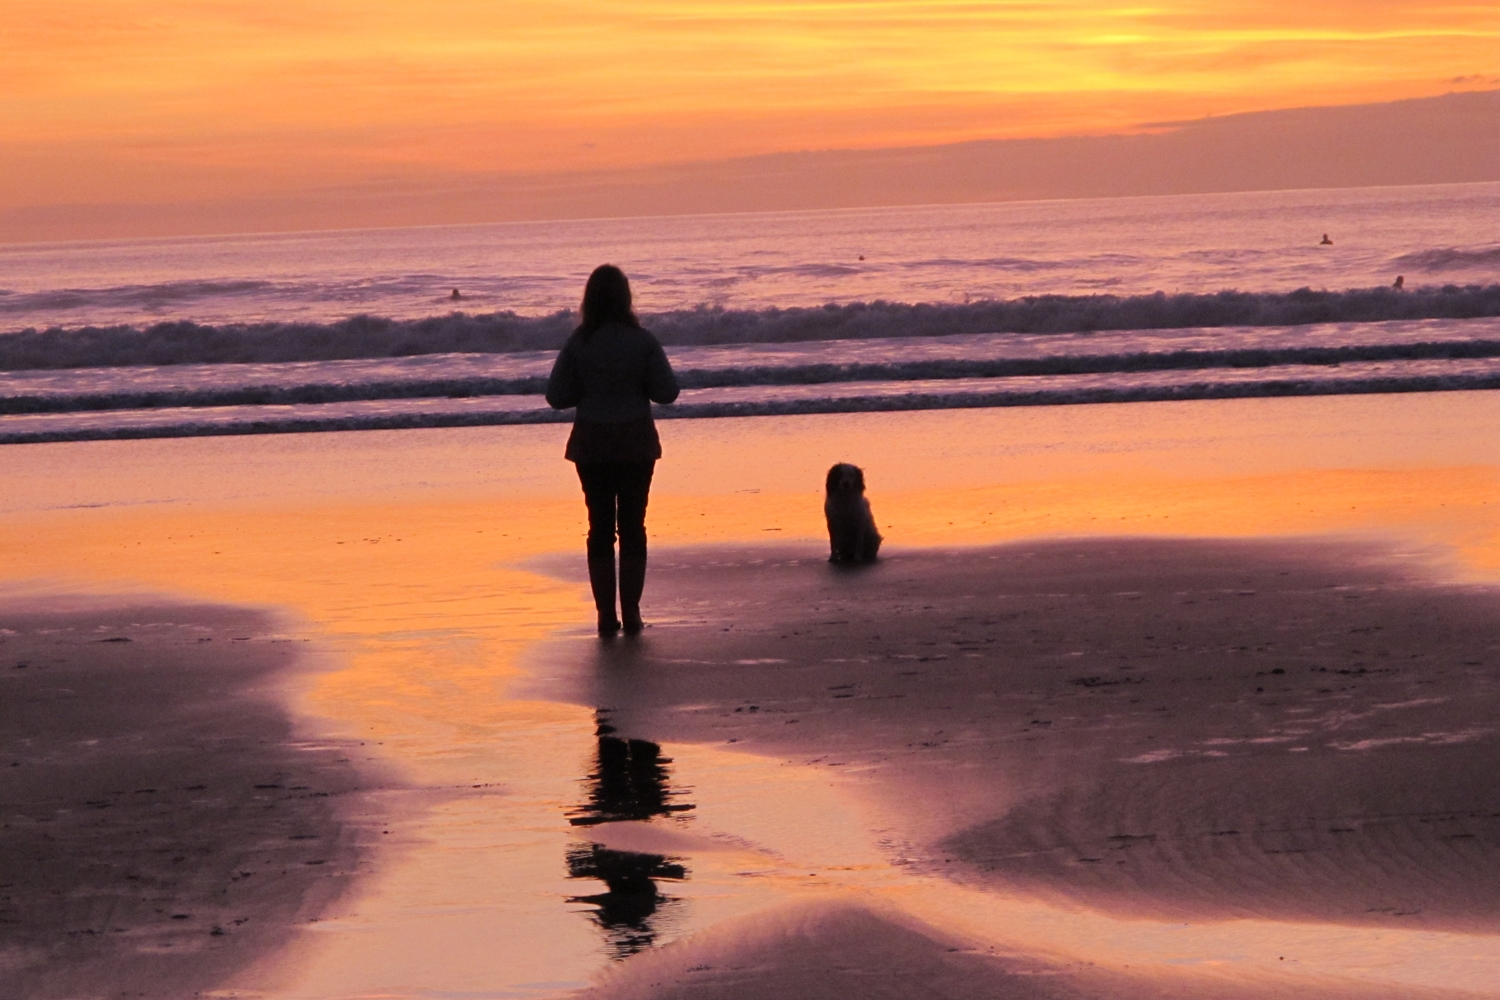 NORTH DEVON'S DOG FRIENDLY BEACHES YOU CAN VISIT THIS AUTUMN/WINTER